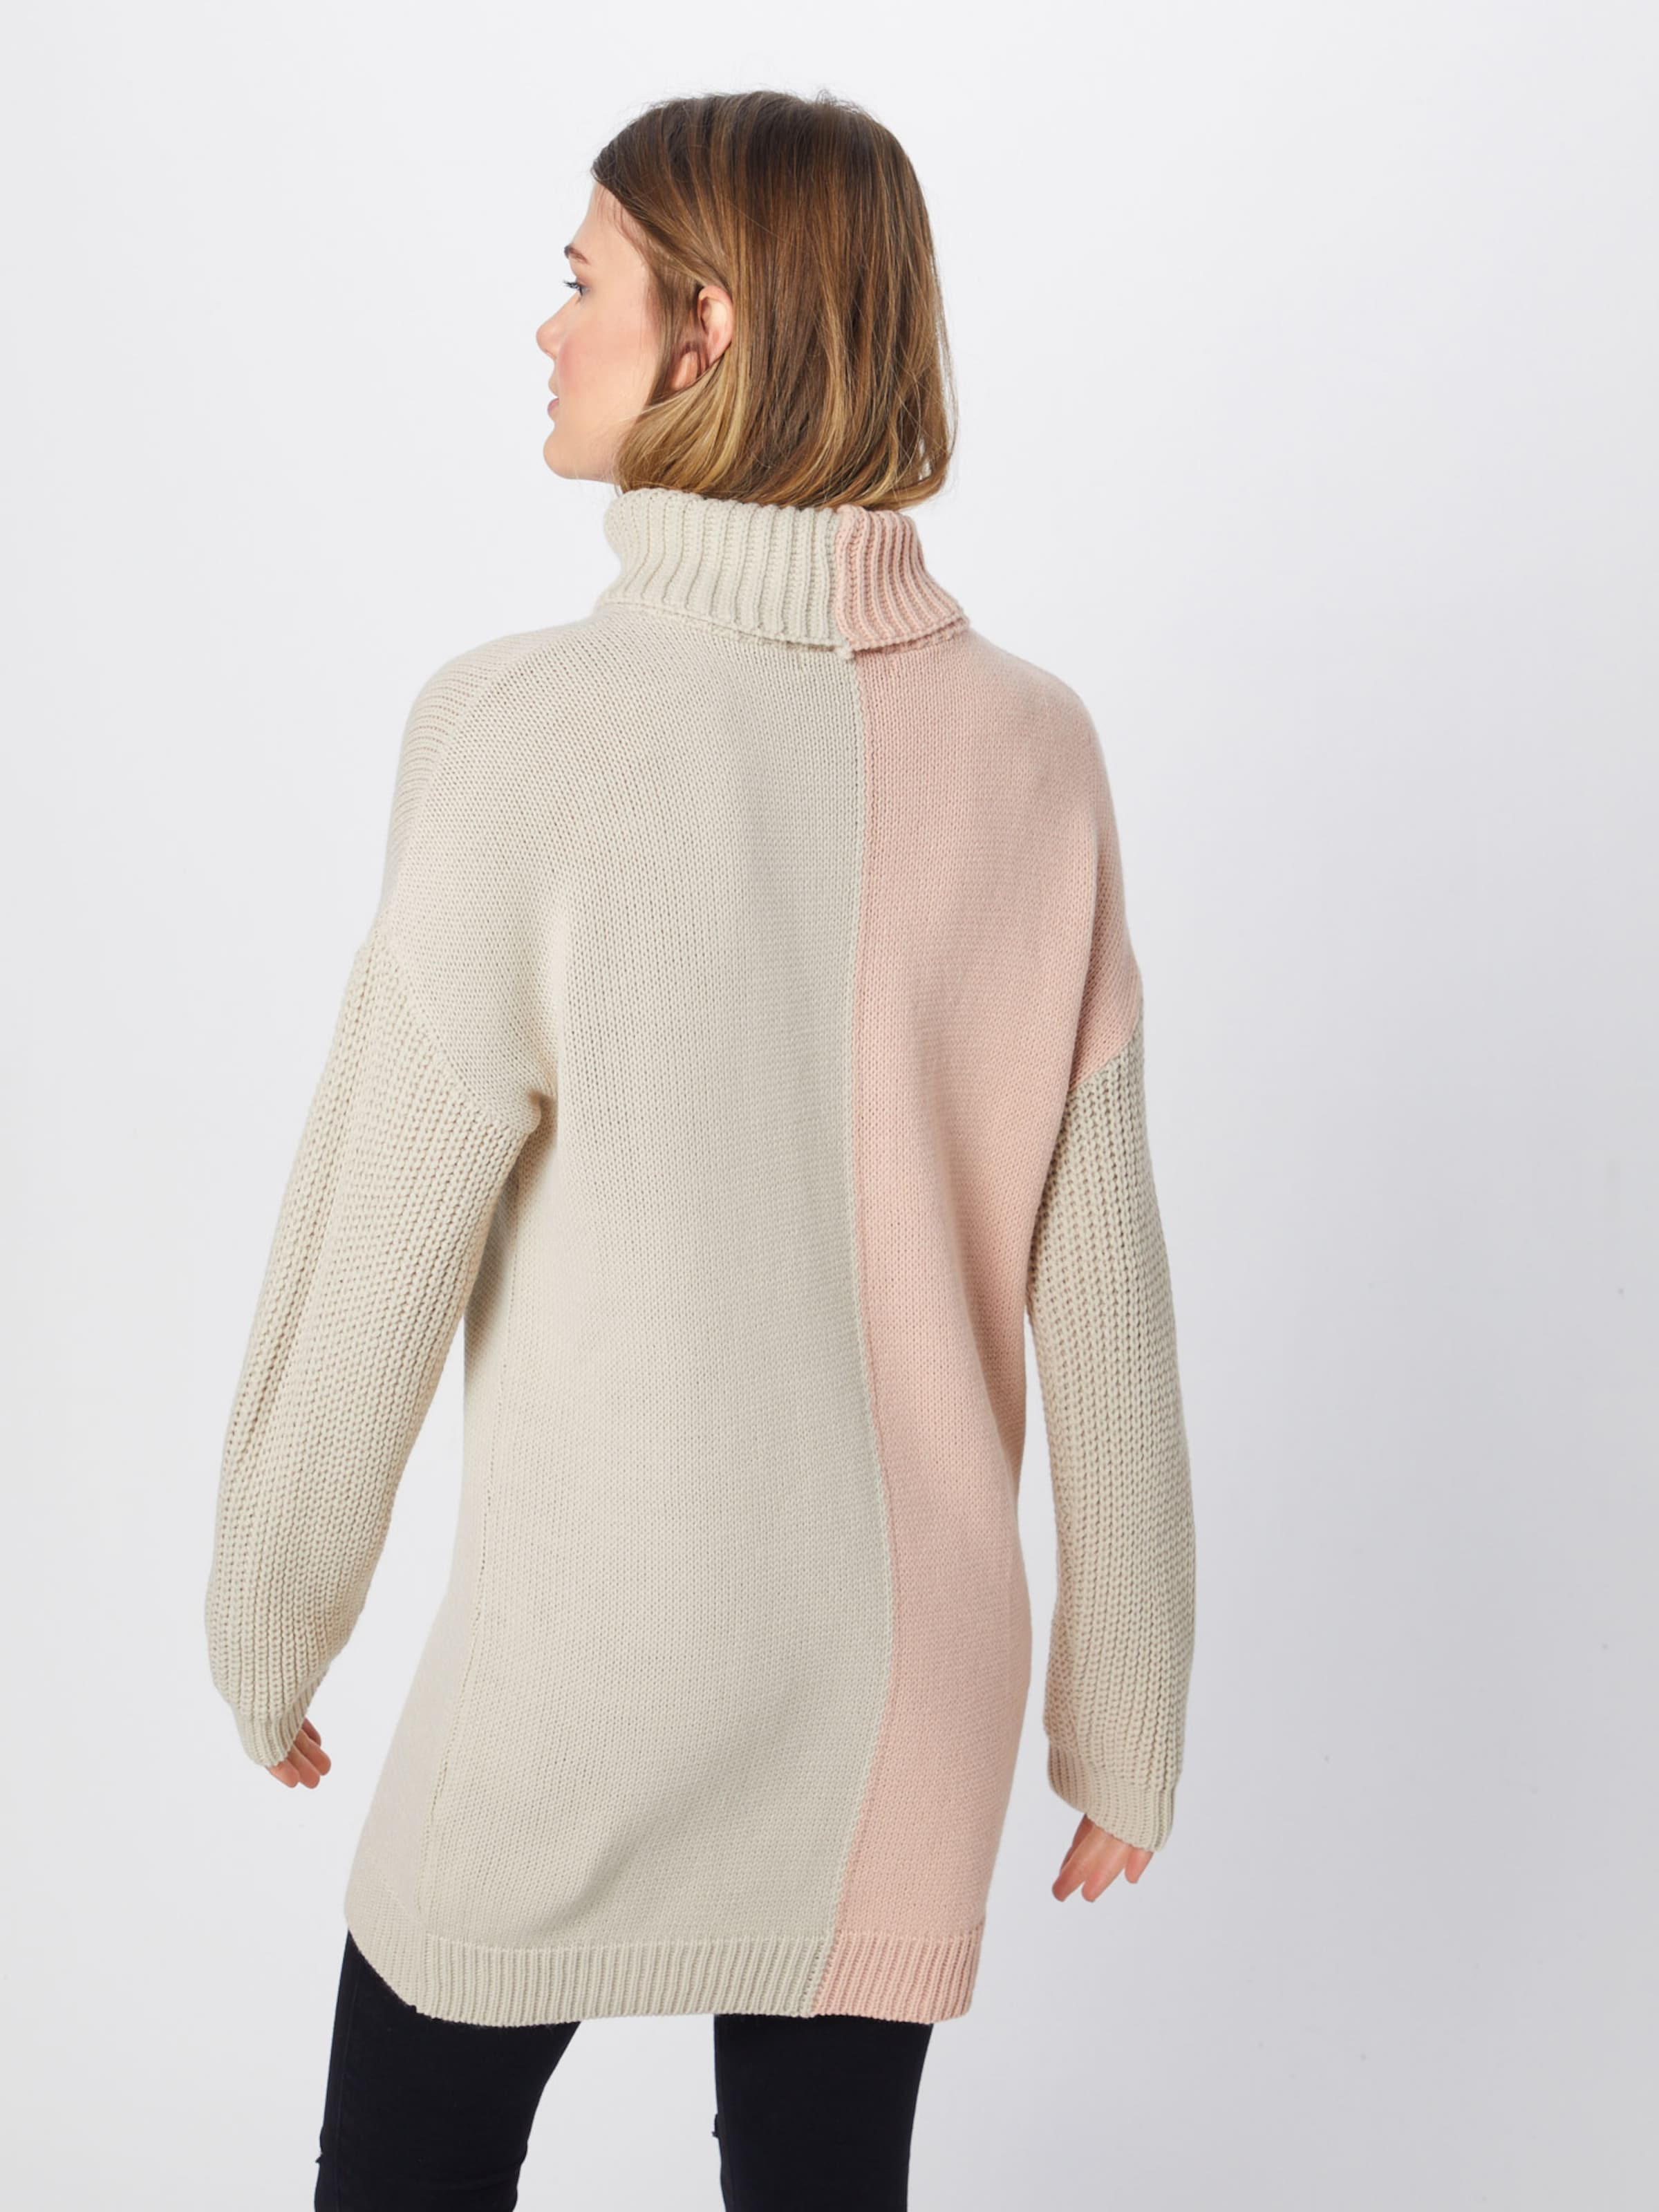 Neck Pullover Roll RosaWei Missguided Jumper' 'spliced Colourblock In PkXO0w8n